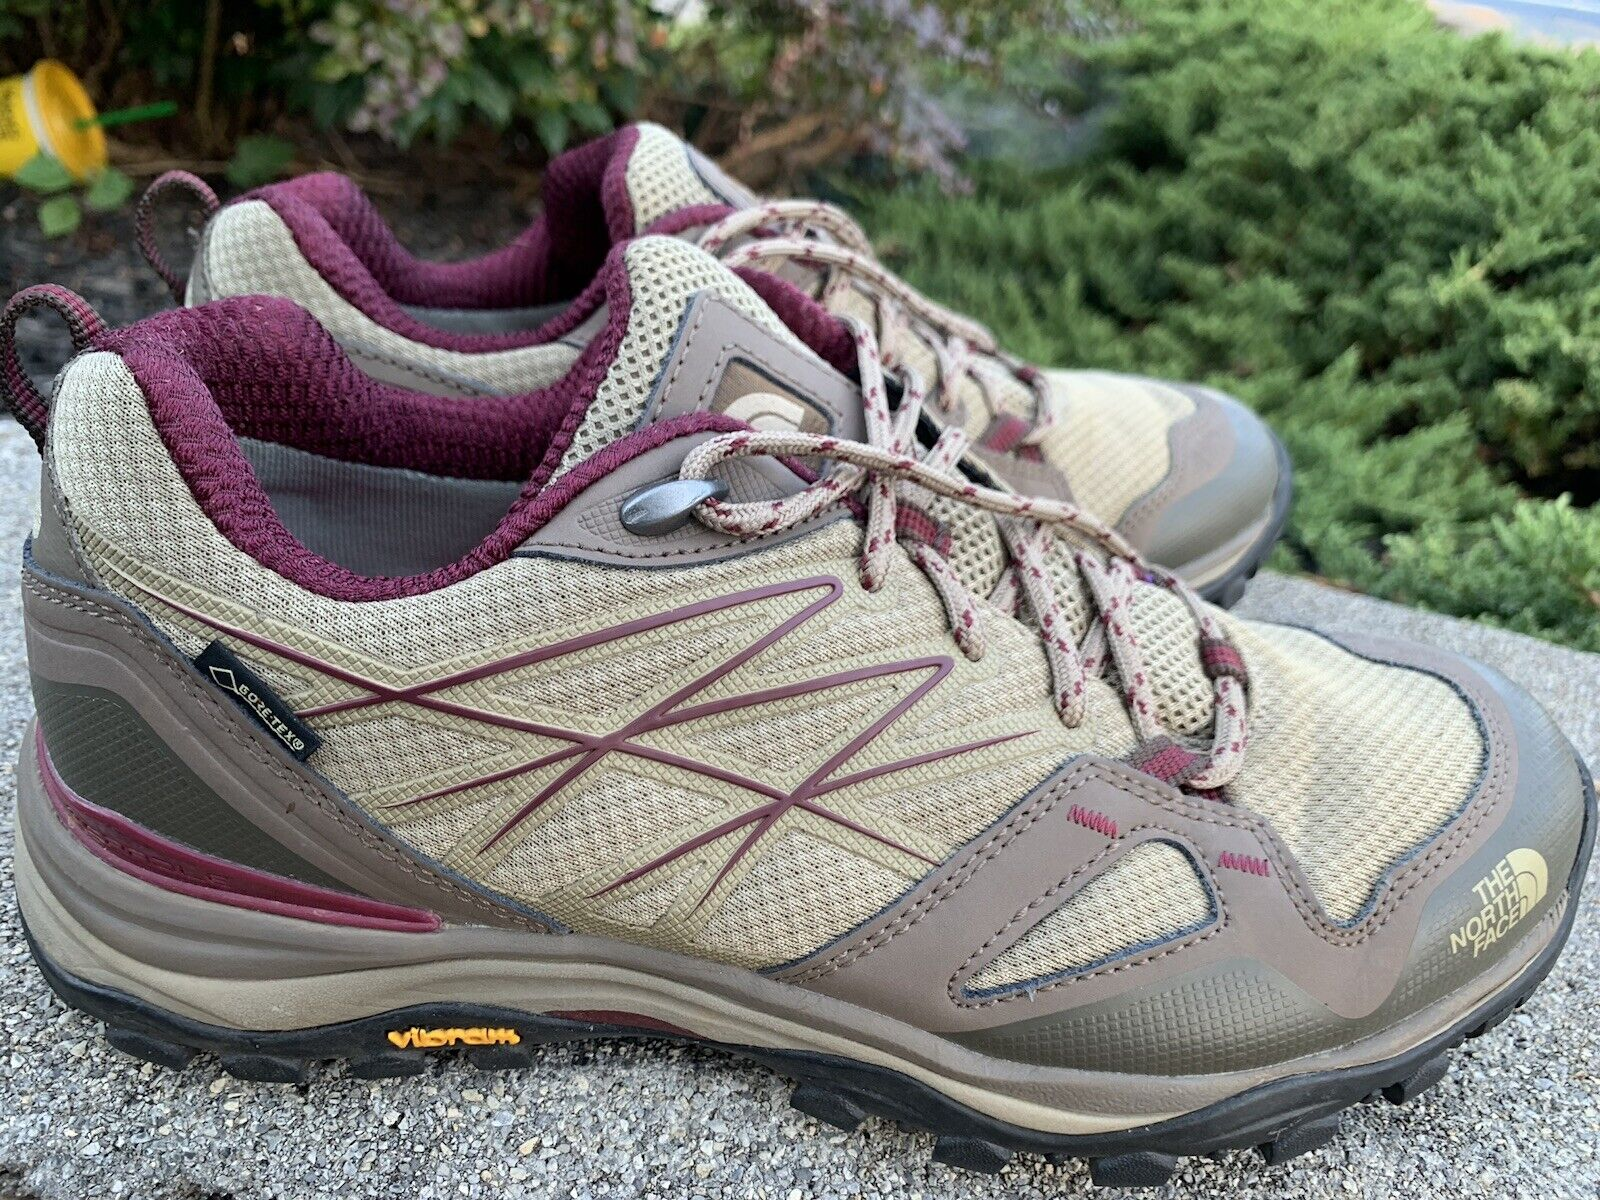 The North  Face  Trail shoes Size 9M 40 Camping Hiking ECU Gortex  shop clearance